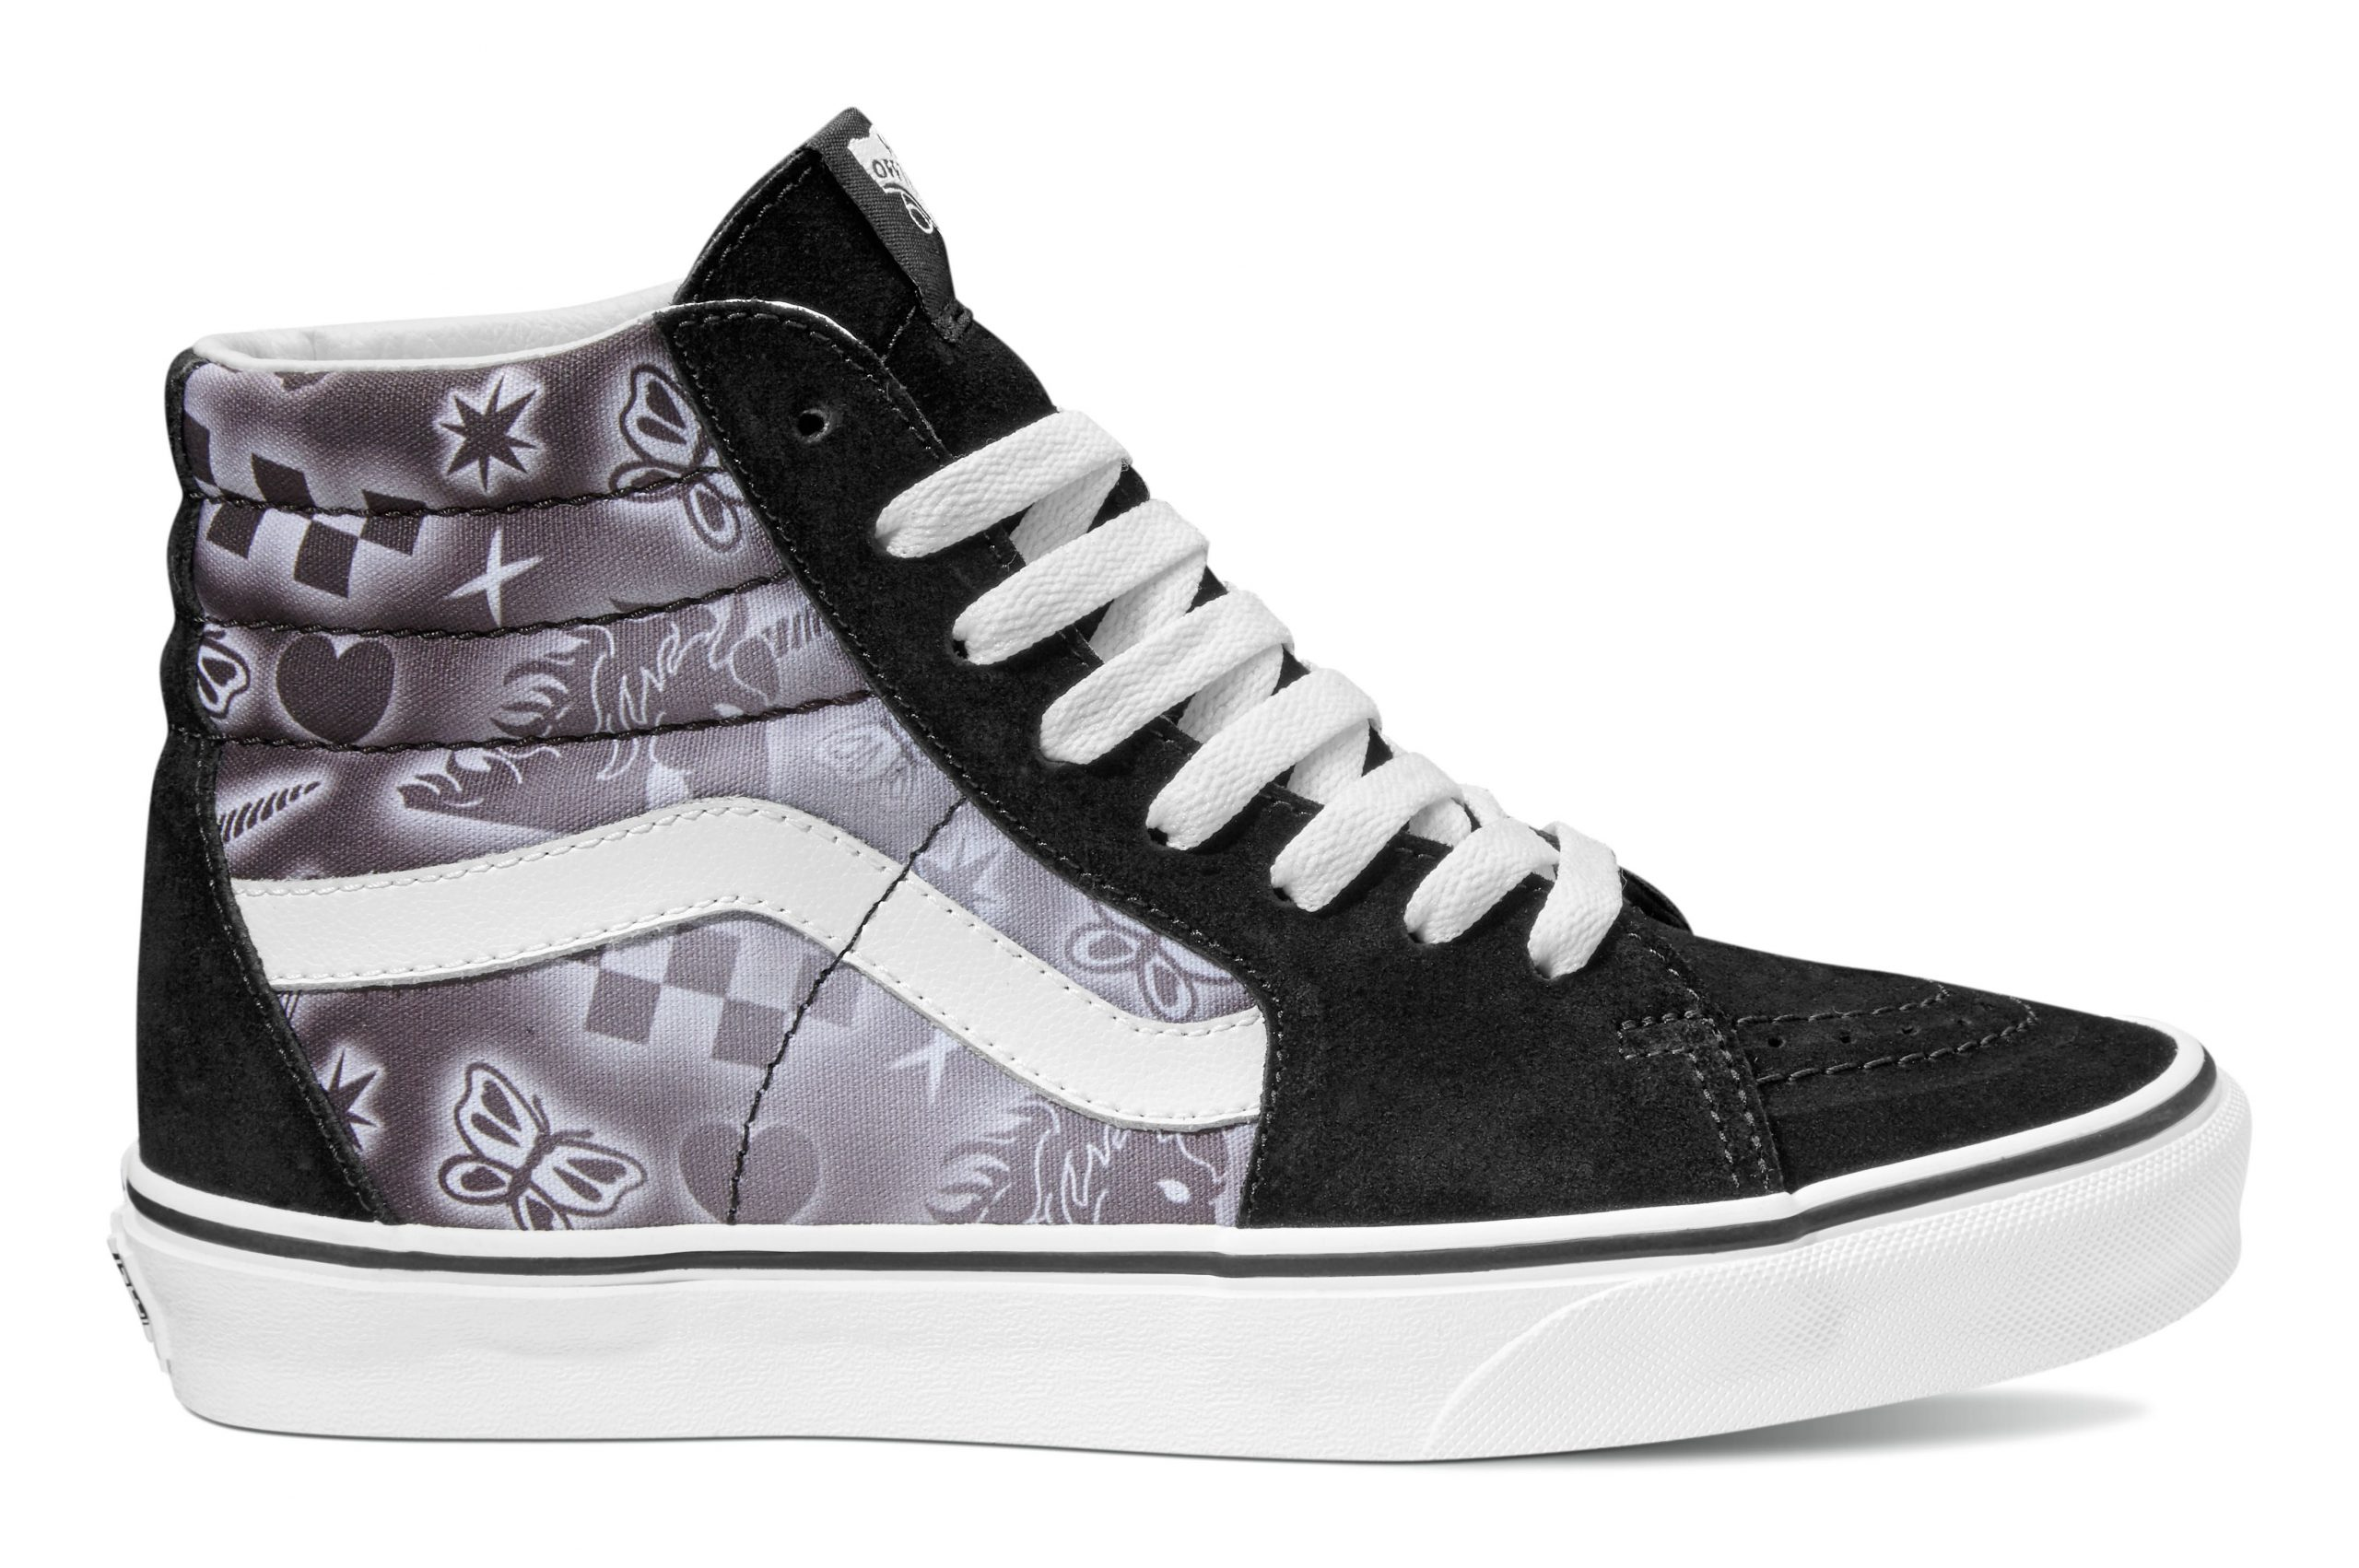 UA_SK8Hi_BetterTogether_black_truewhite_VN0A32QG4U8